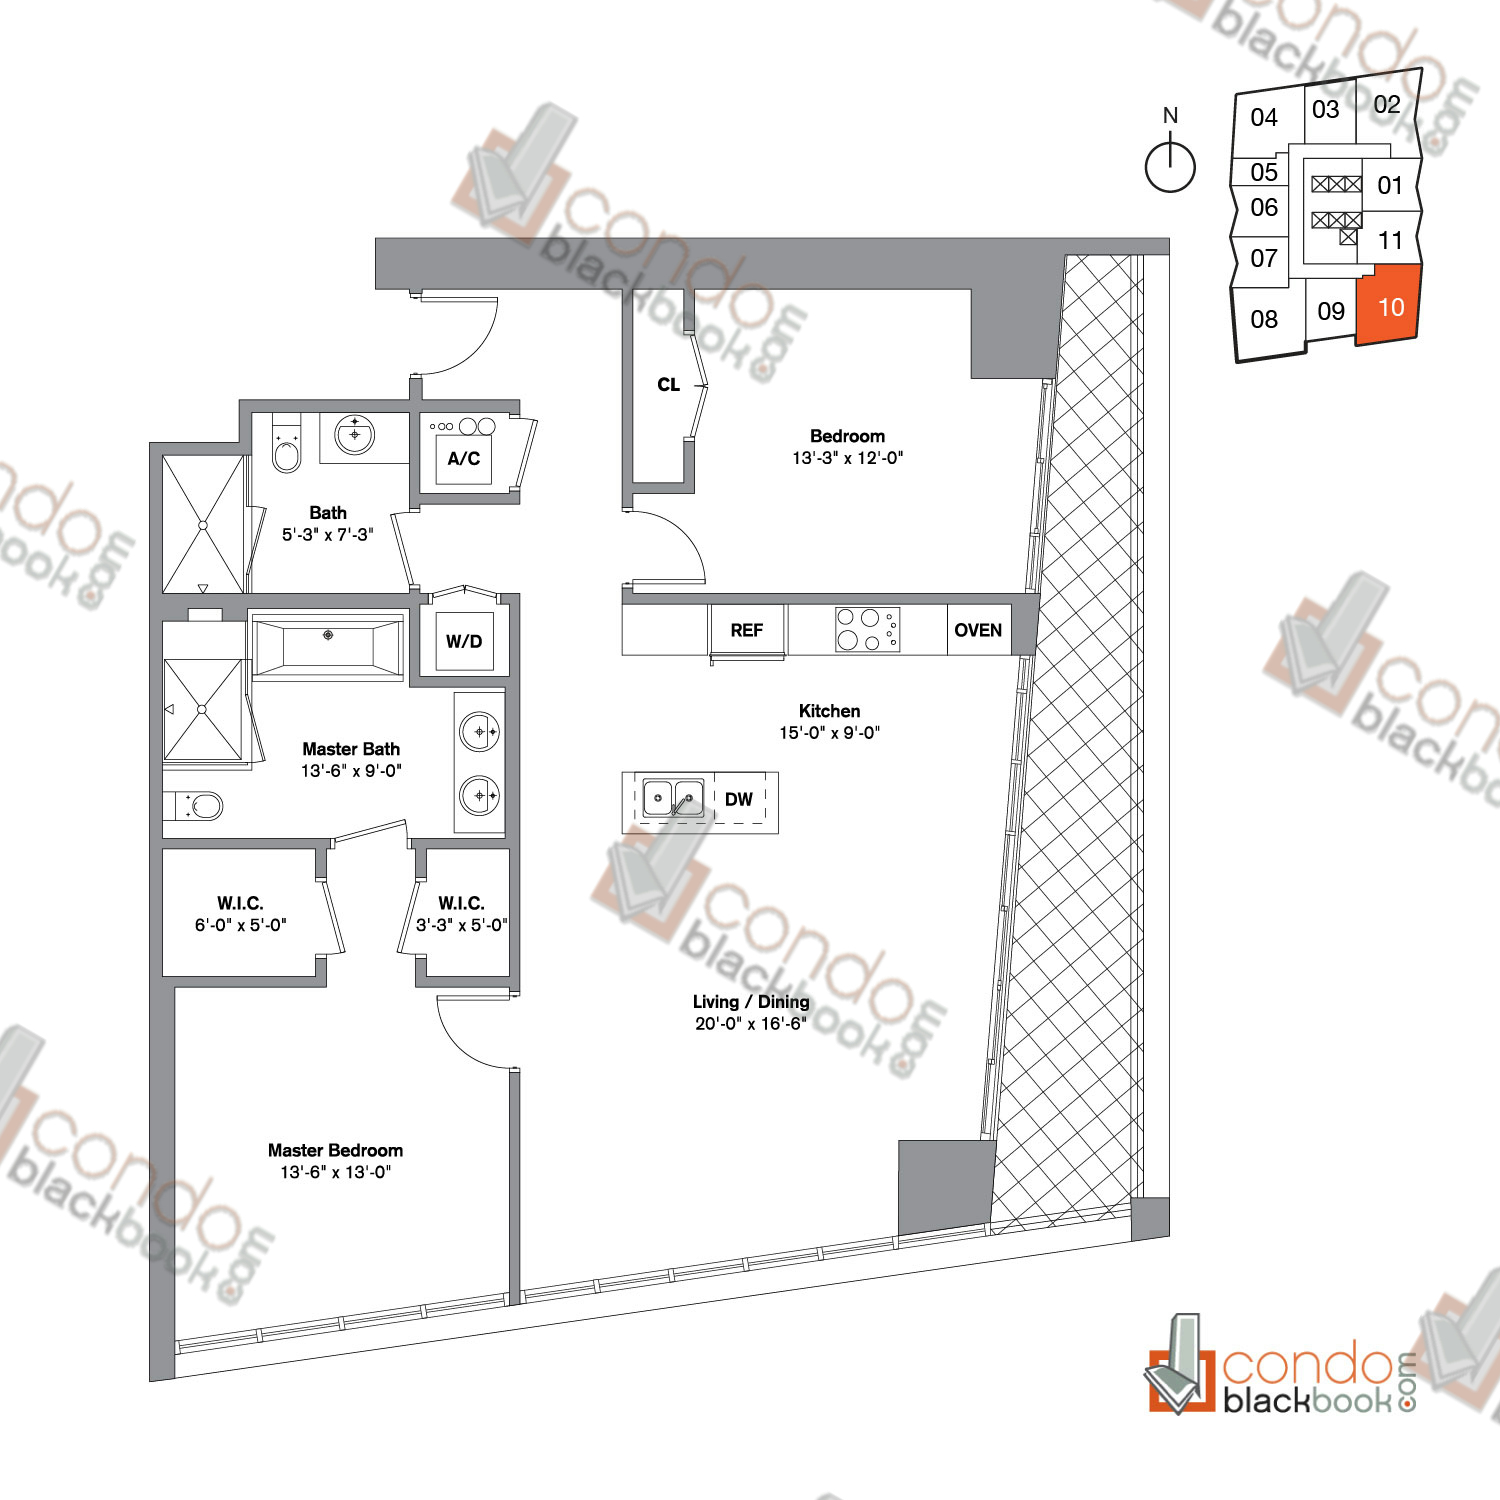 Floor plan for Icon Brickell Viceroy Brickell Miami, model Unit C, line 10,  2/2 bedrooms, 1,347 sq ft